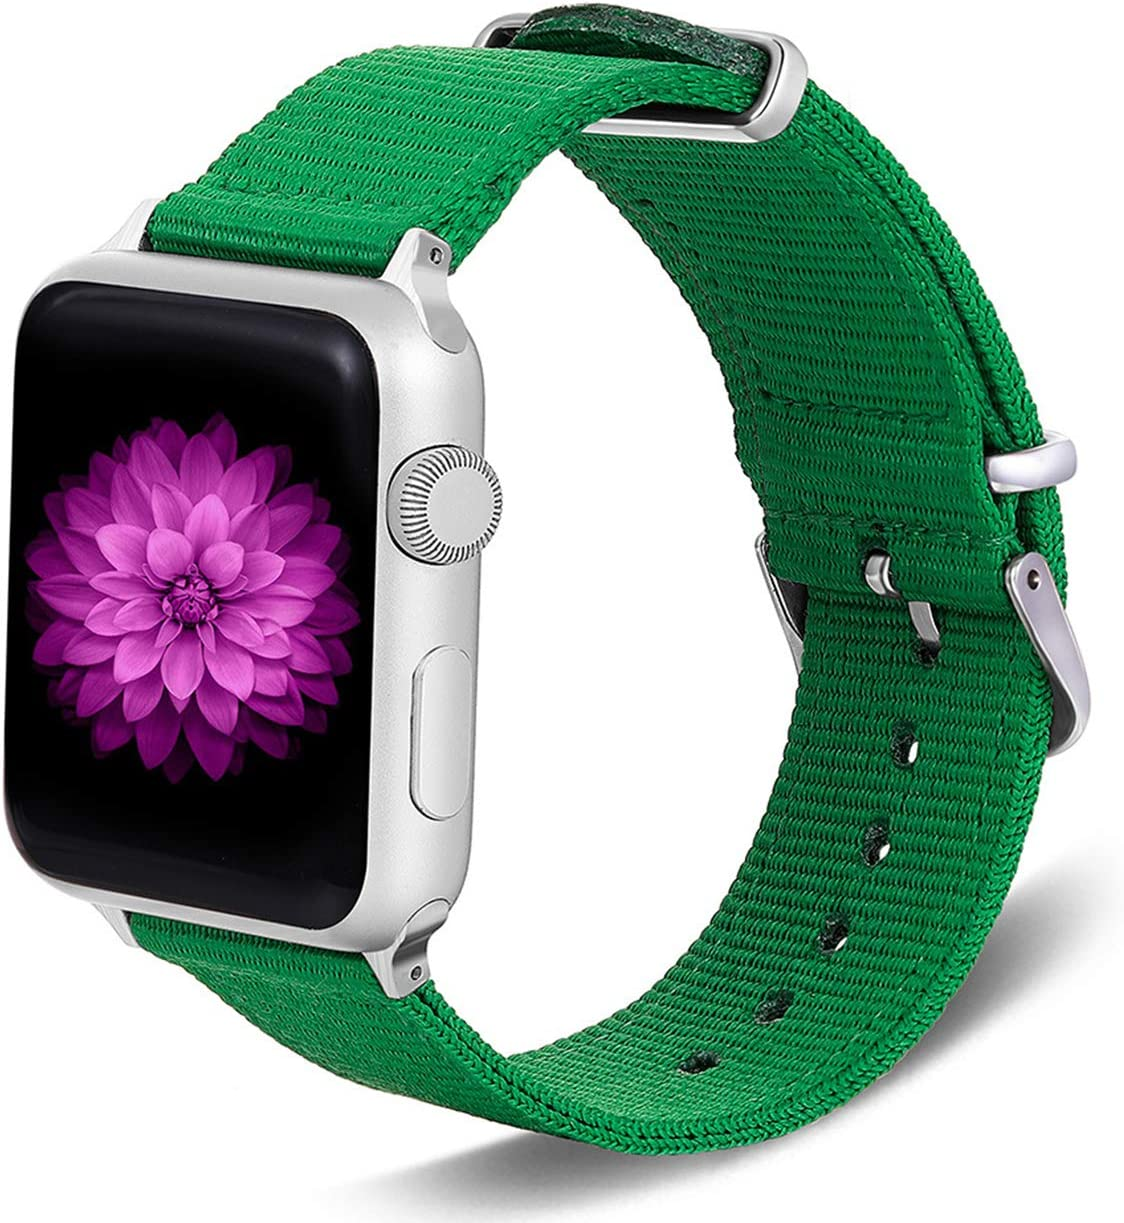 TinaWood Wristband Watch Strap Comfortable Denim Fabric Replacement Watch Band Compatible for iWatch Series 4/3/2/1 (Green, 38MM/40MM)